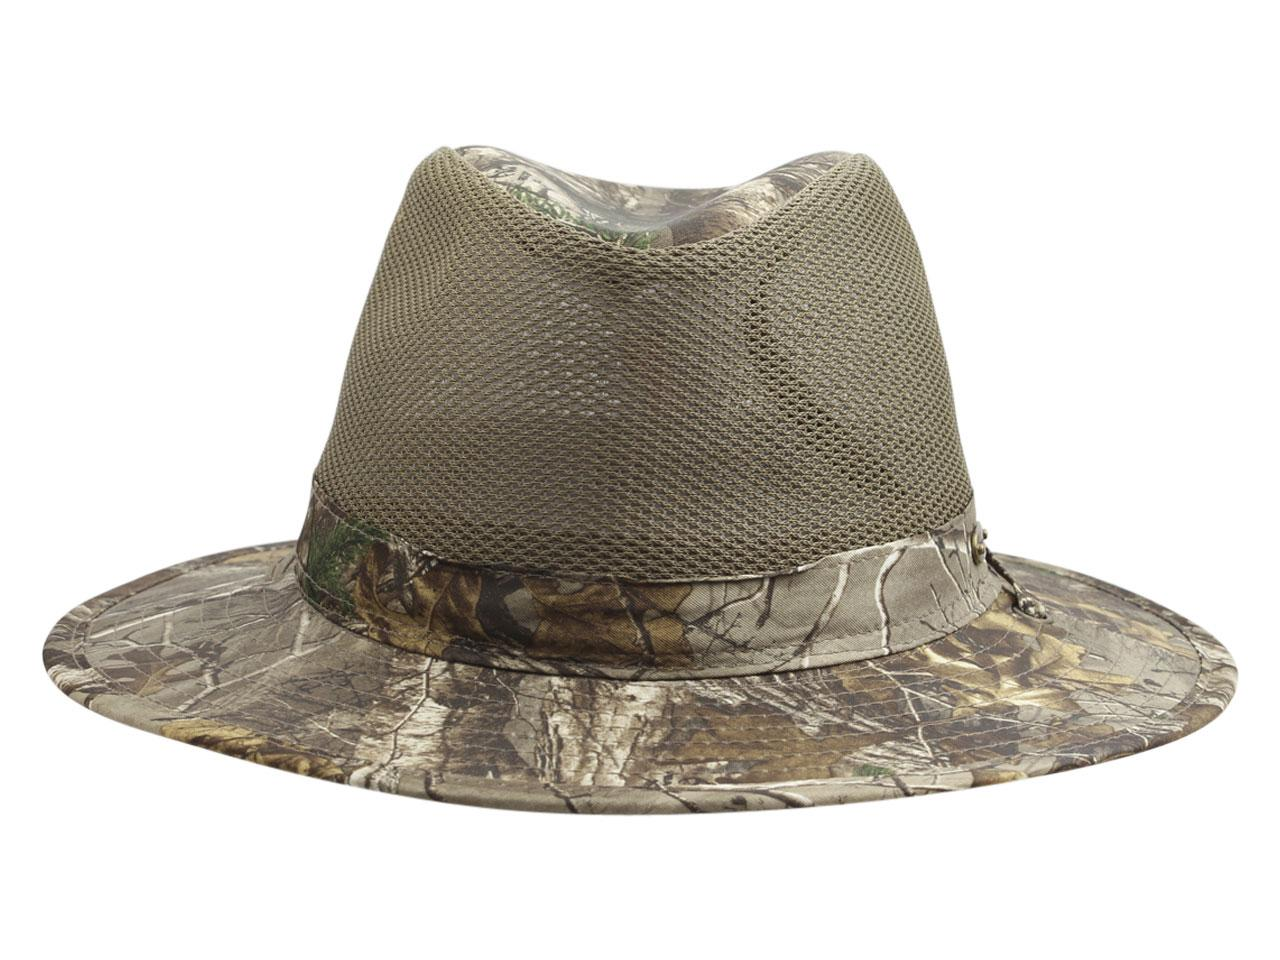 5e93f2d017d Stetson Men s Realtree Xtra No Fly Zone Insect Repellent Safari Hat by  Stetson. 1234